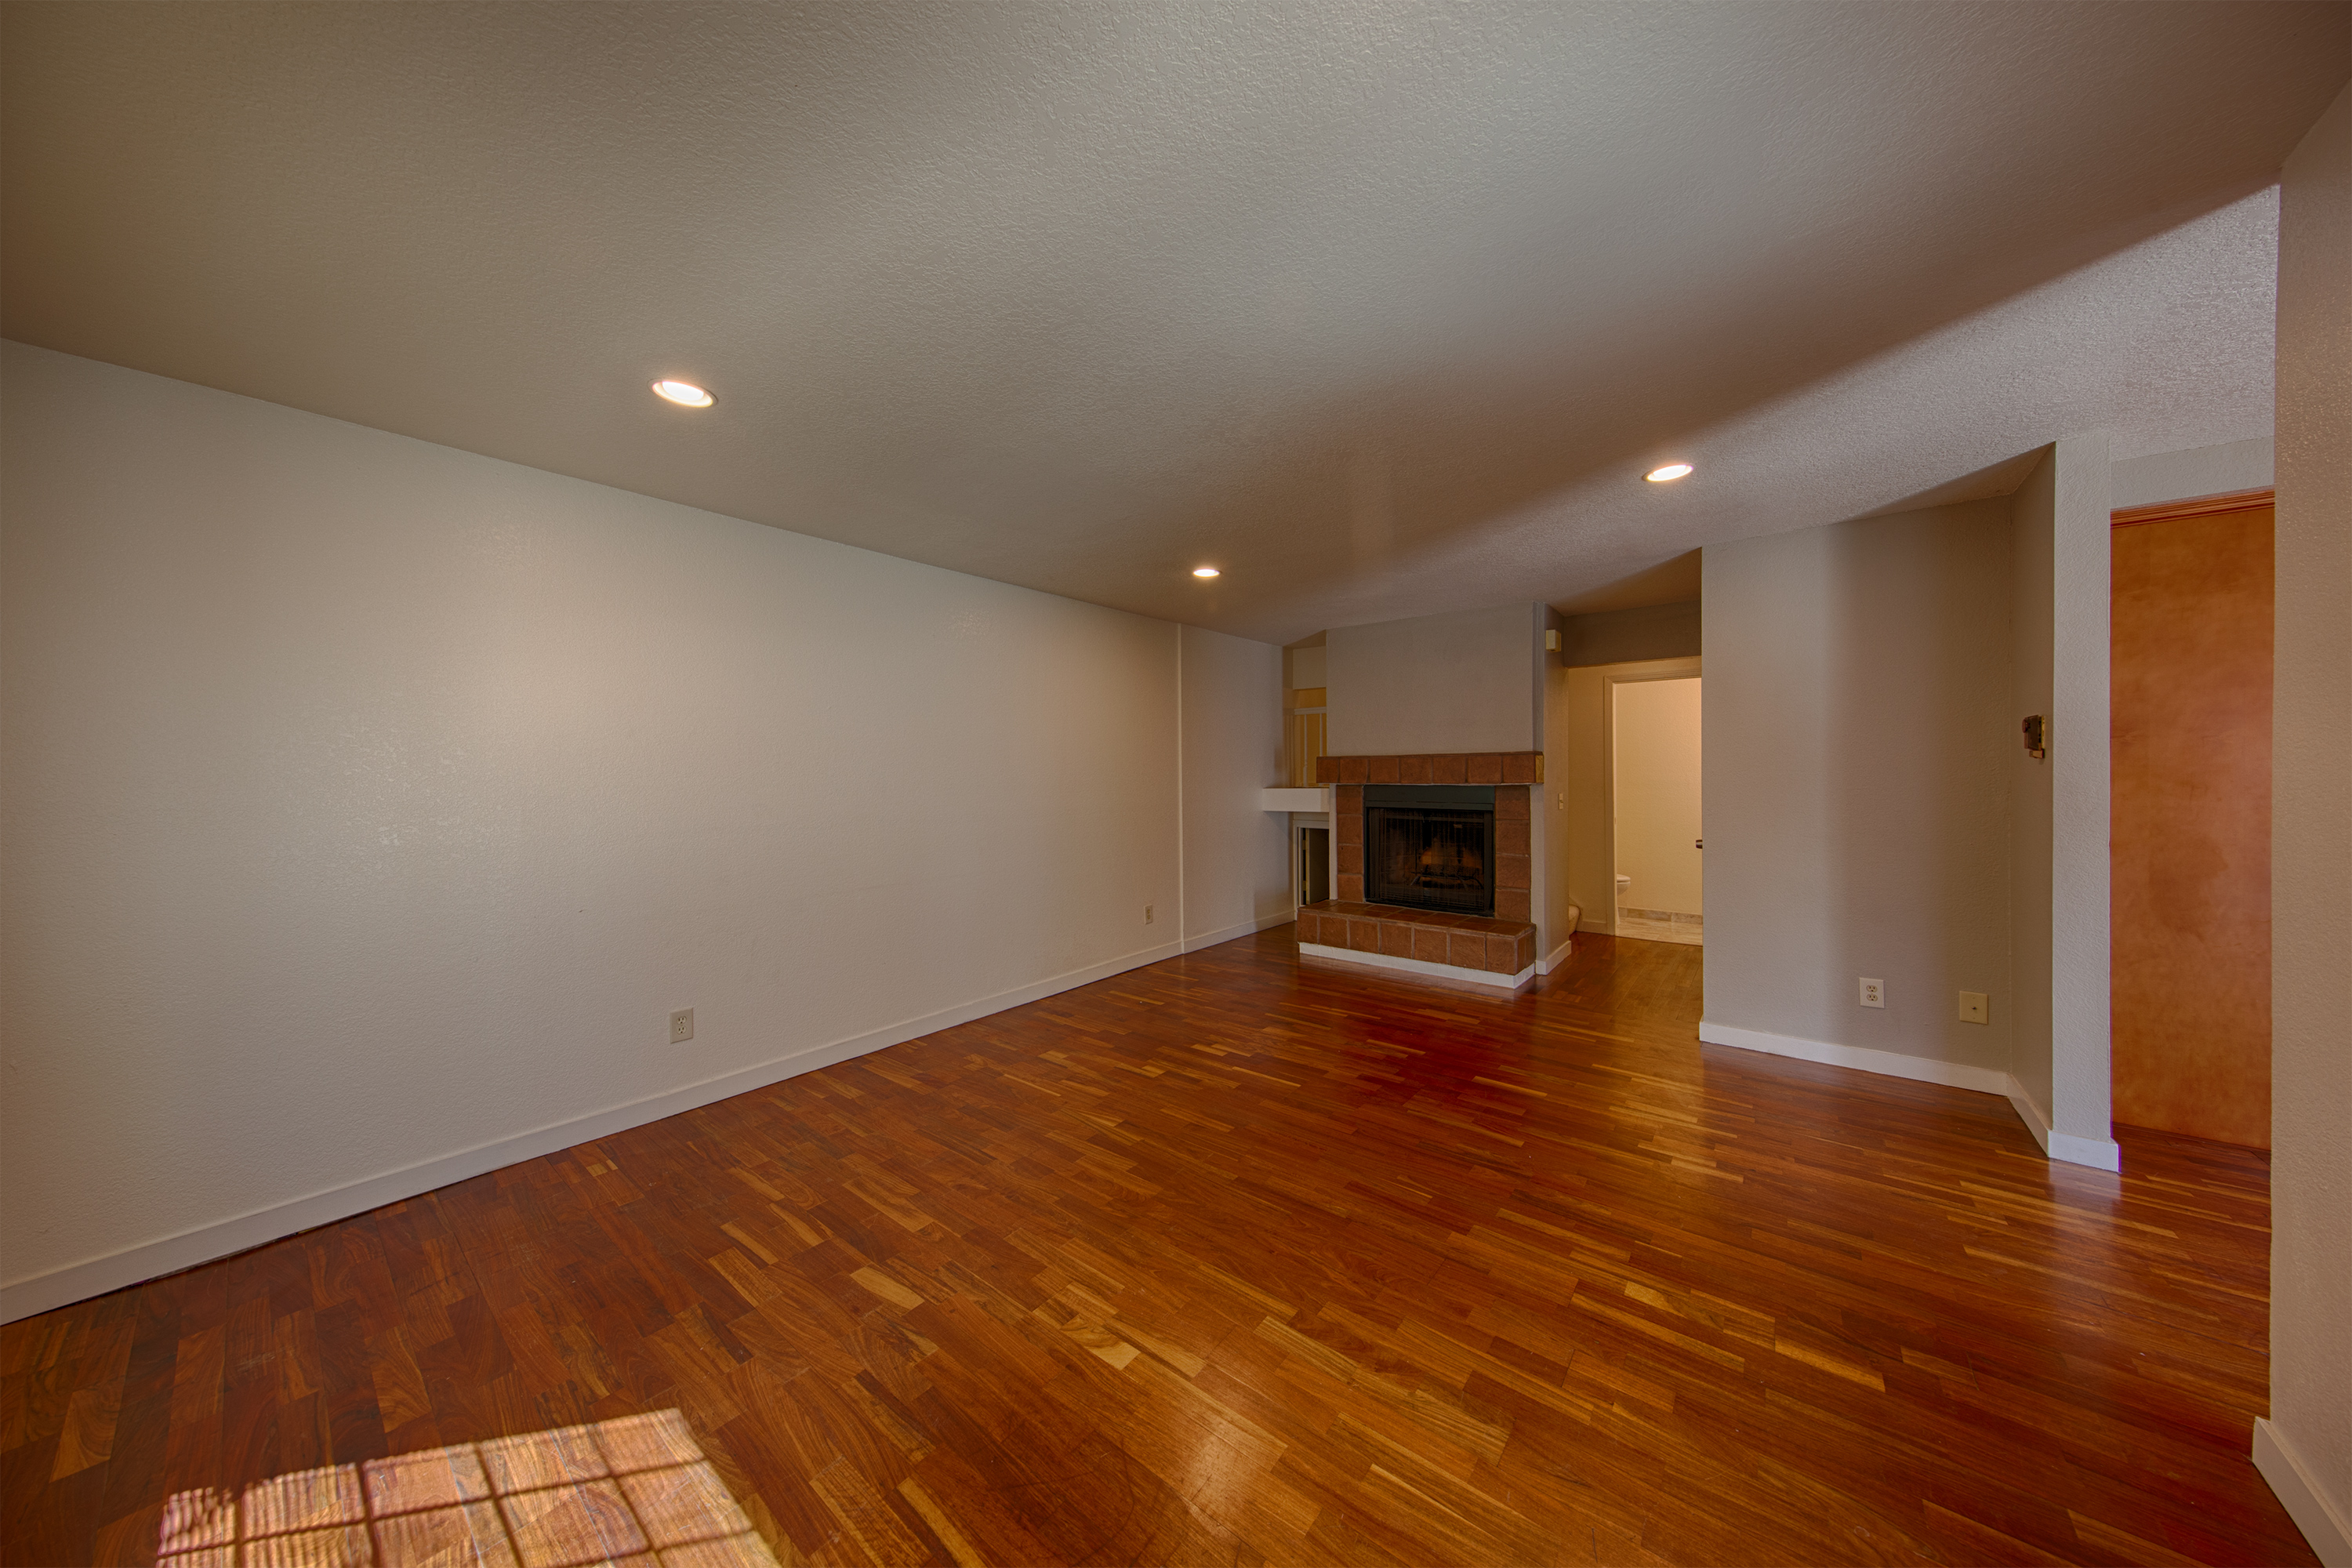 19860 Portal Plaza, Cupertino 95014 - Living Room (A)